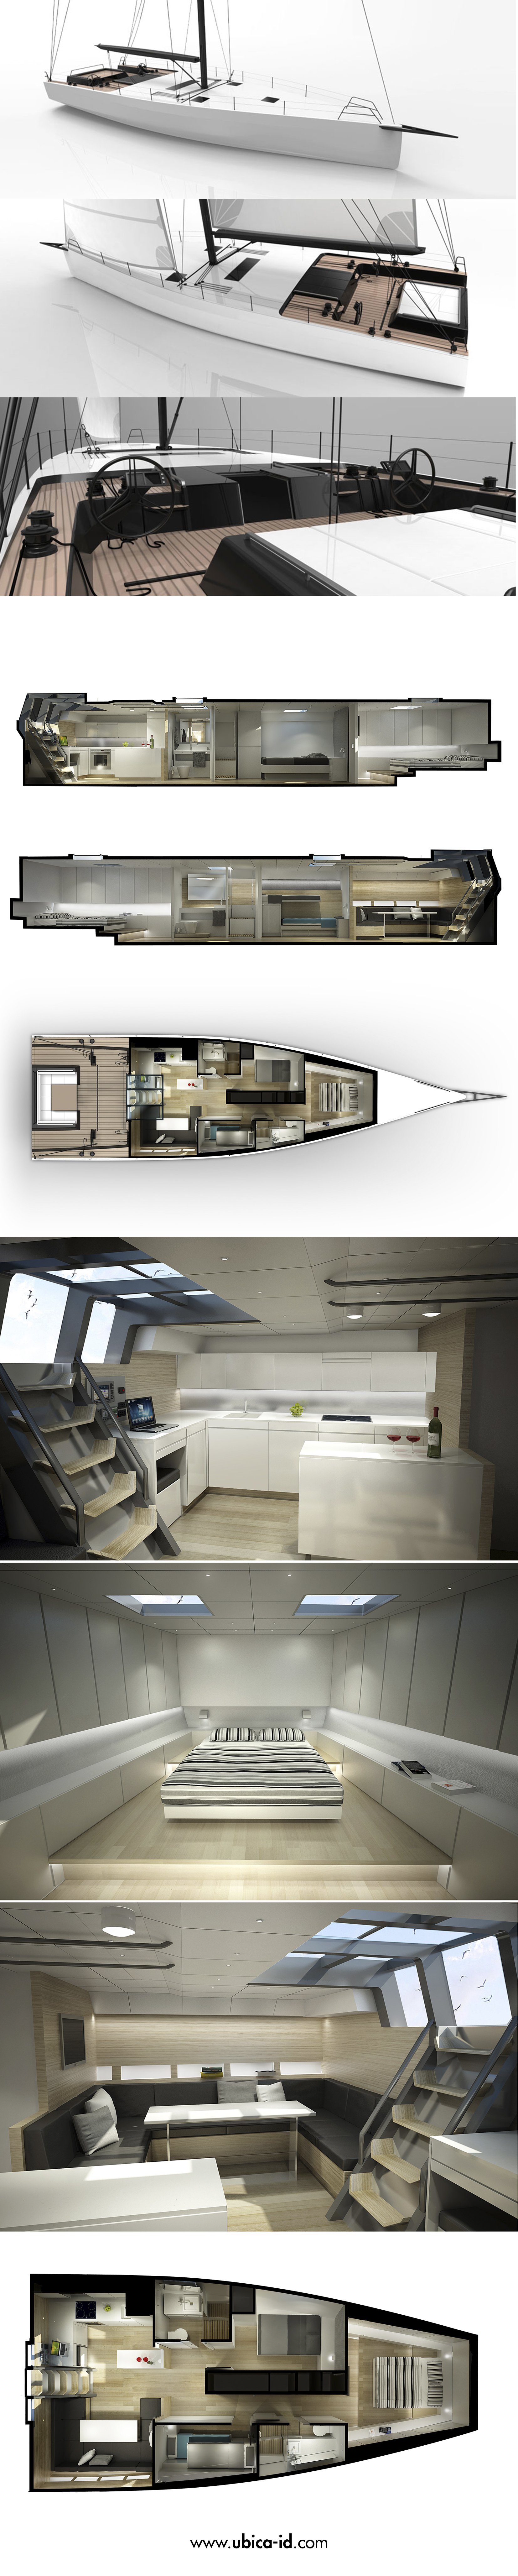 Concept yacht, Peugeot Design Lab - Peugeot This could be my home ...